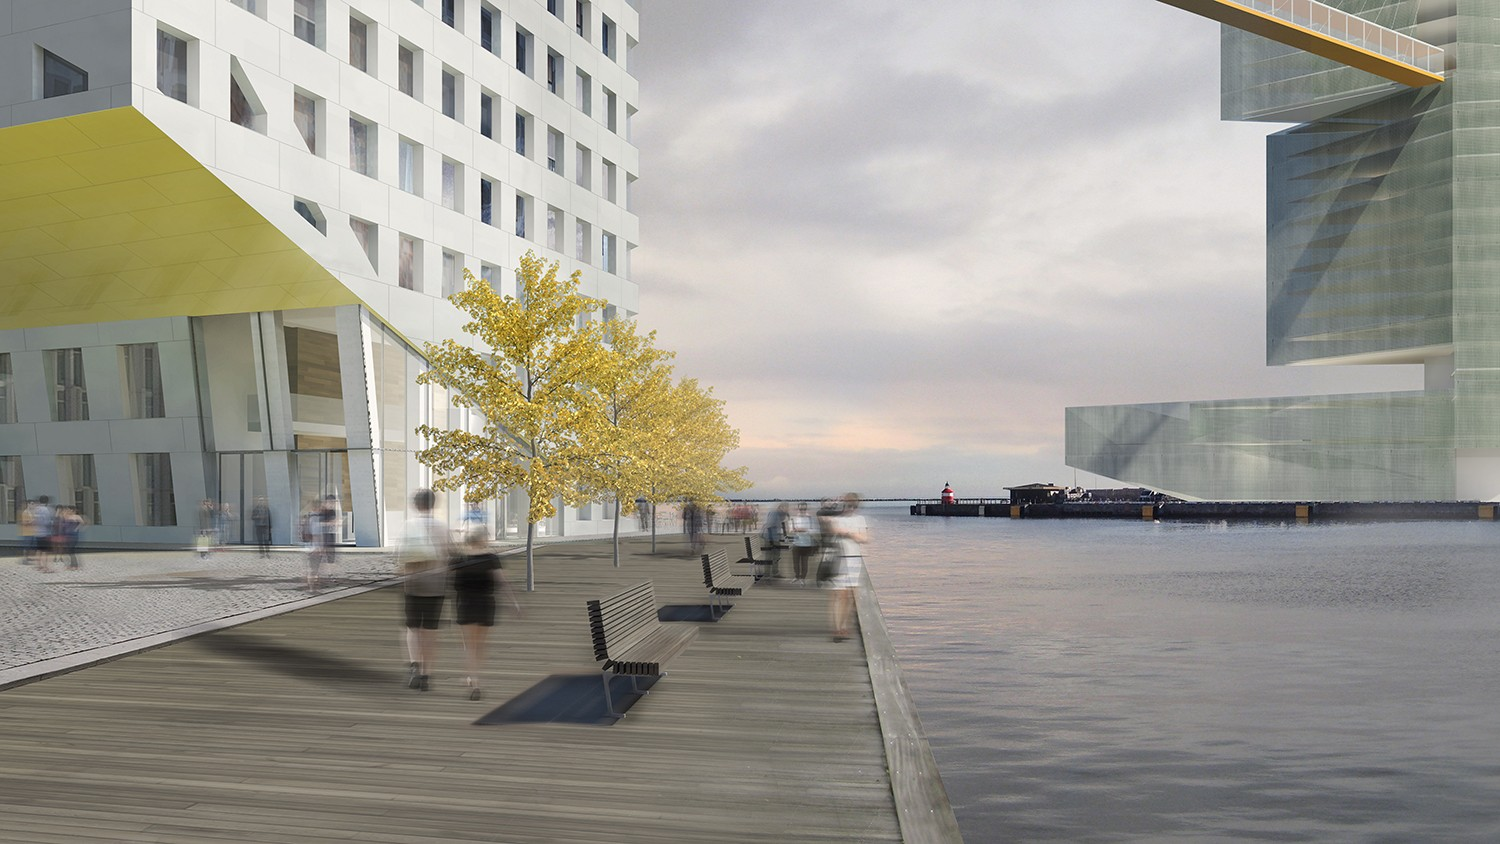 https://stevenholl.sfo2.digitaloceanspaces.com/uploads/projects/project-images/StevenHollArchitects_LM_CopenhagenGate_ViewB_WH.jpg